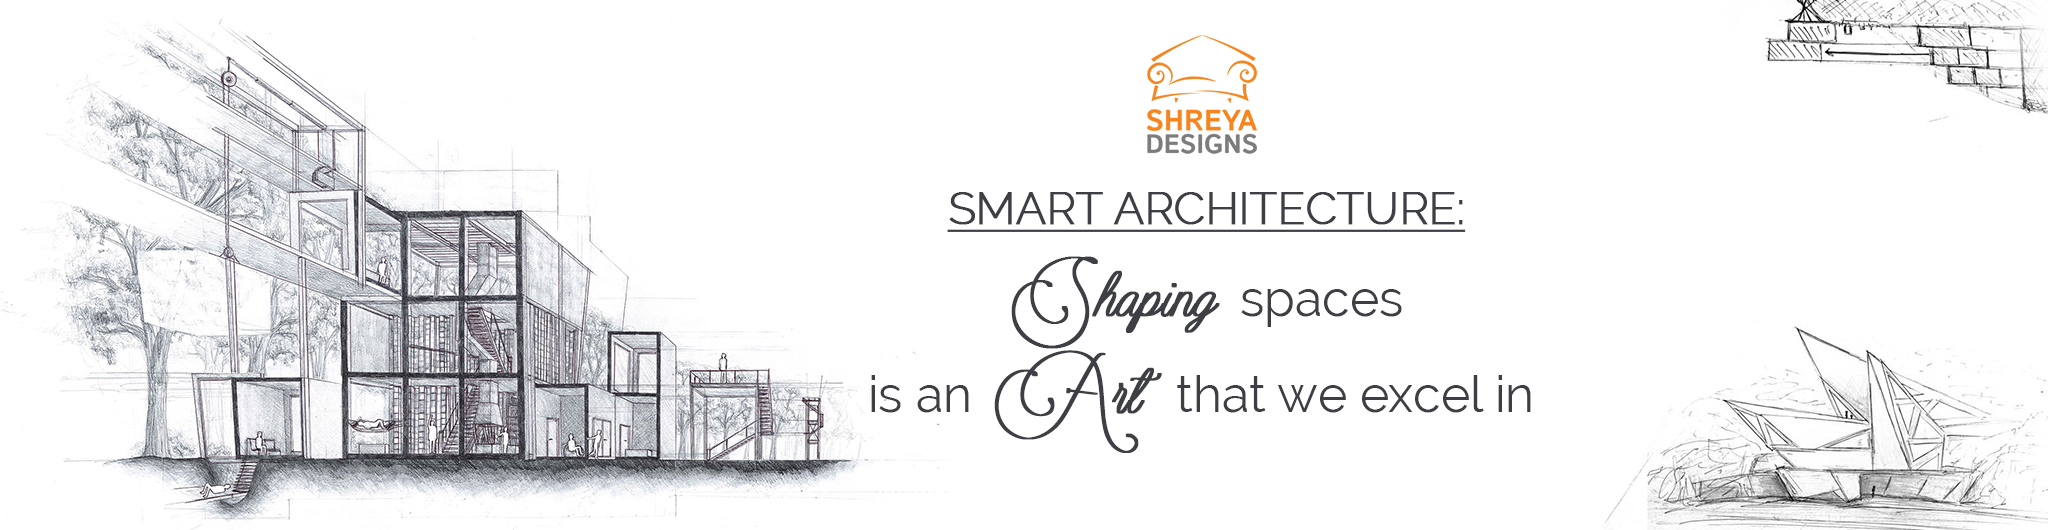 Shreya Designs Architectural Services